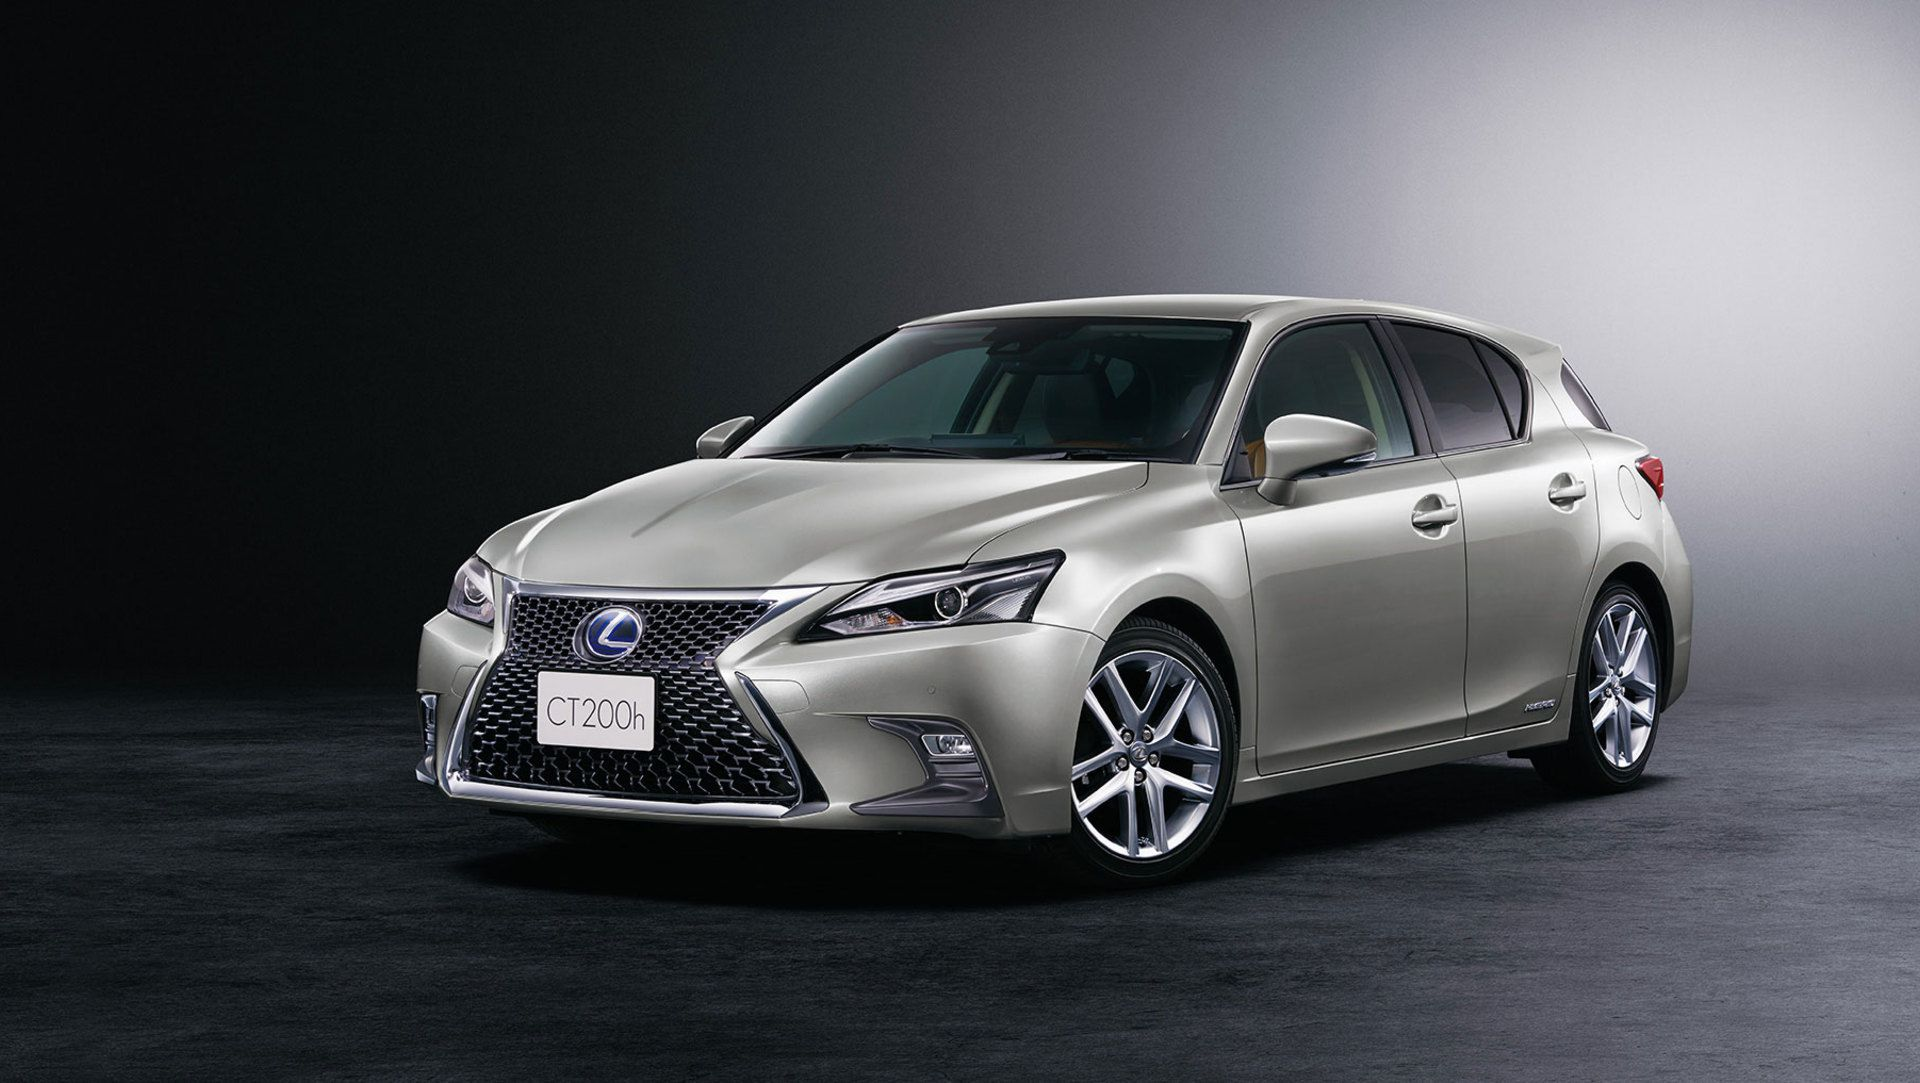 Updated 2018 Lexus CT 200h Arrives at Japanese Dealerships  Auto